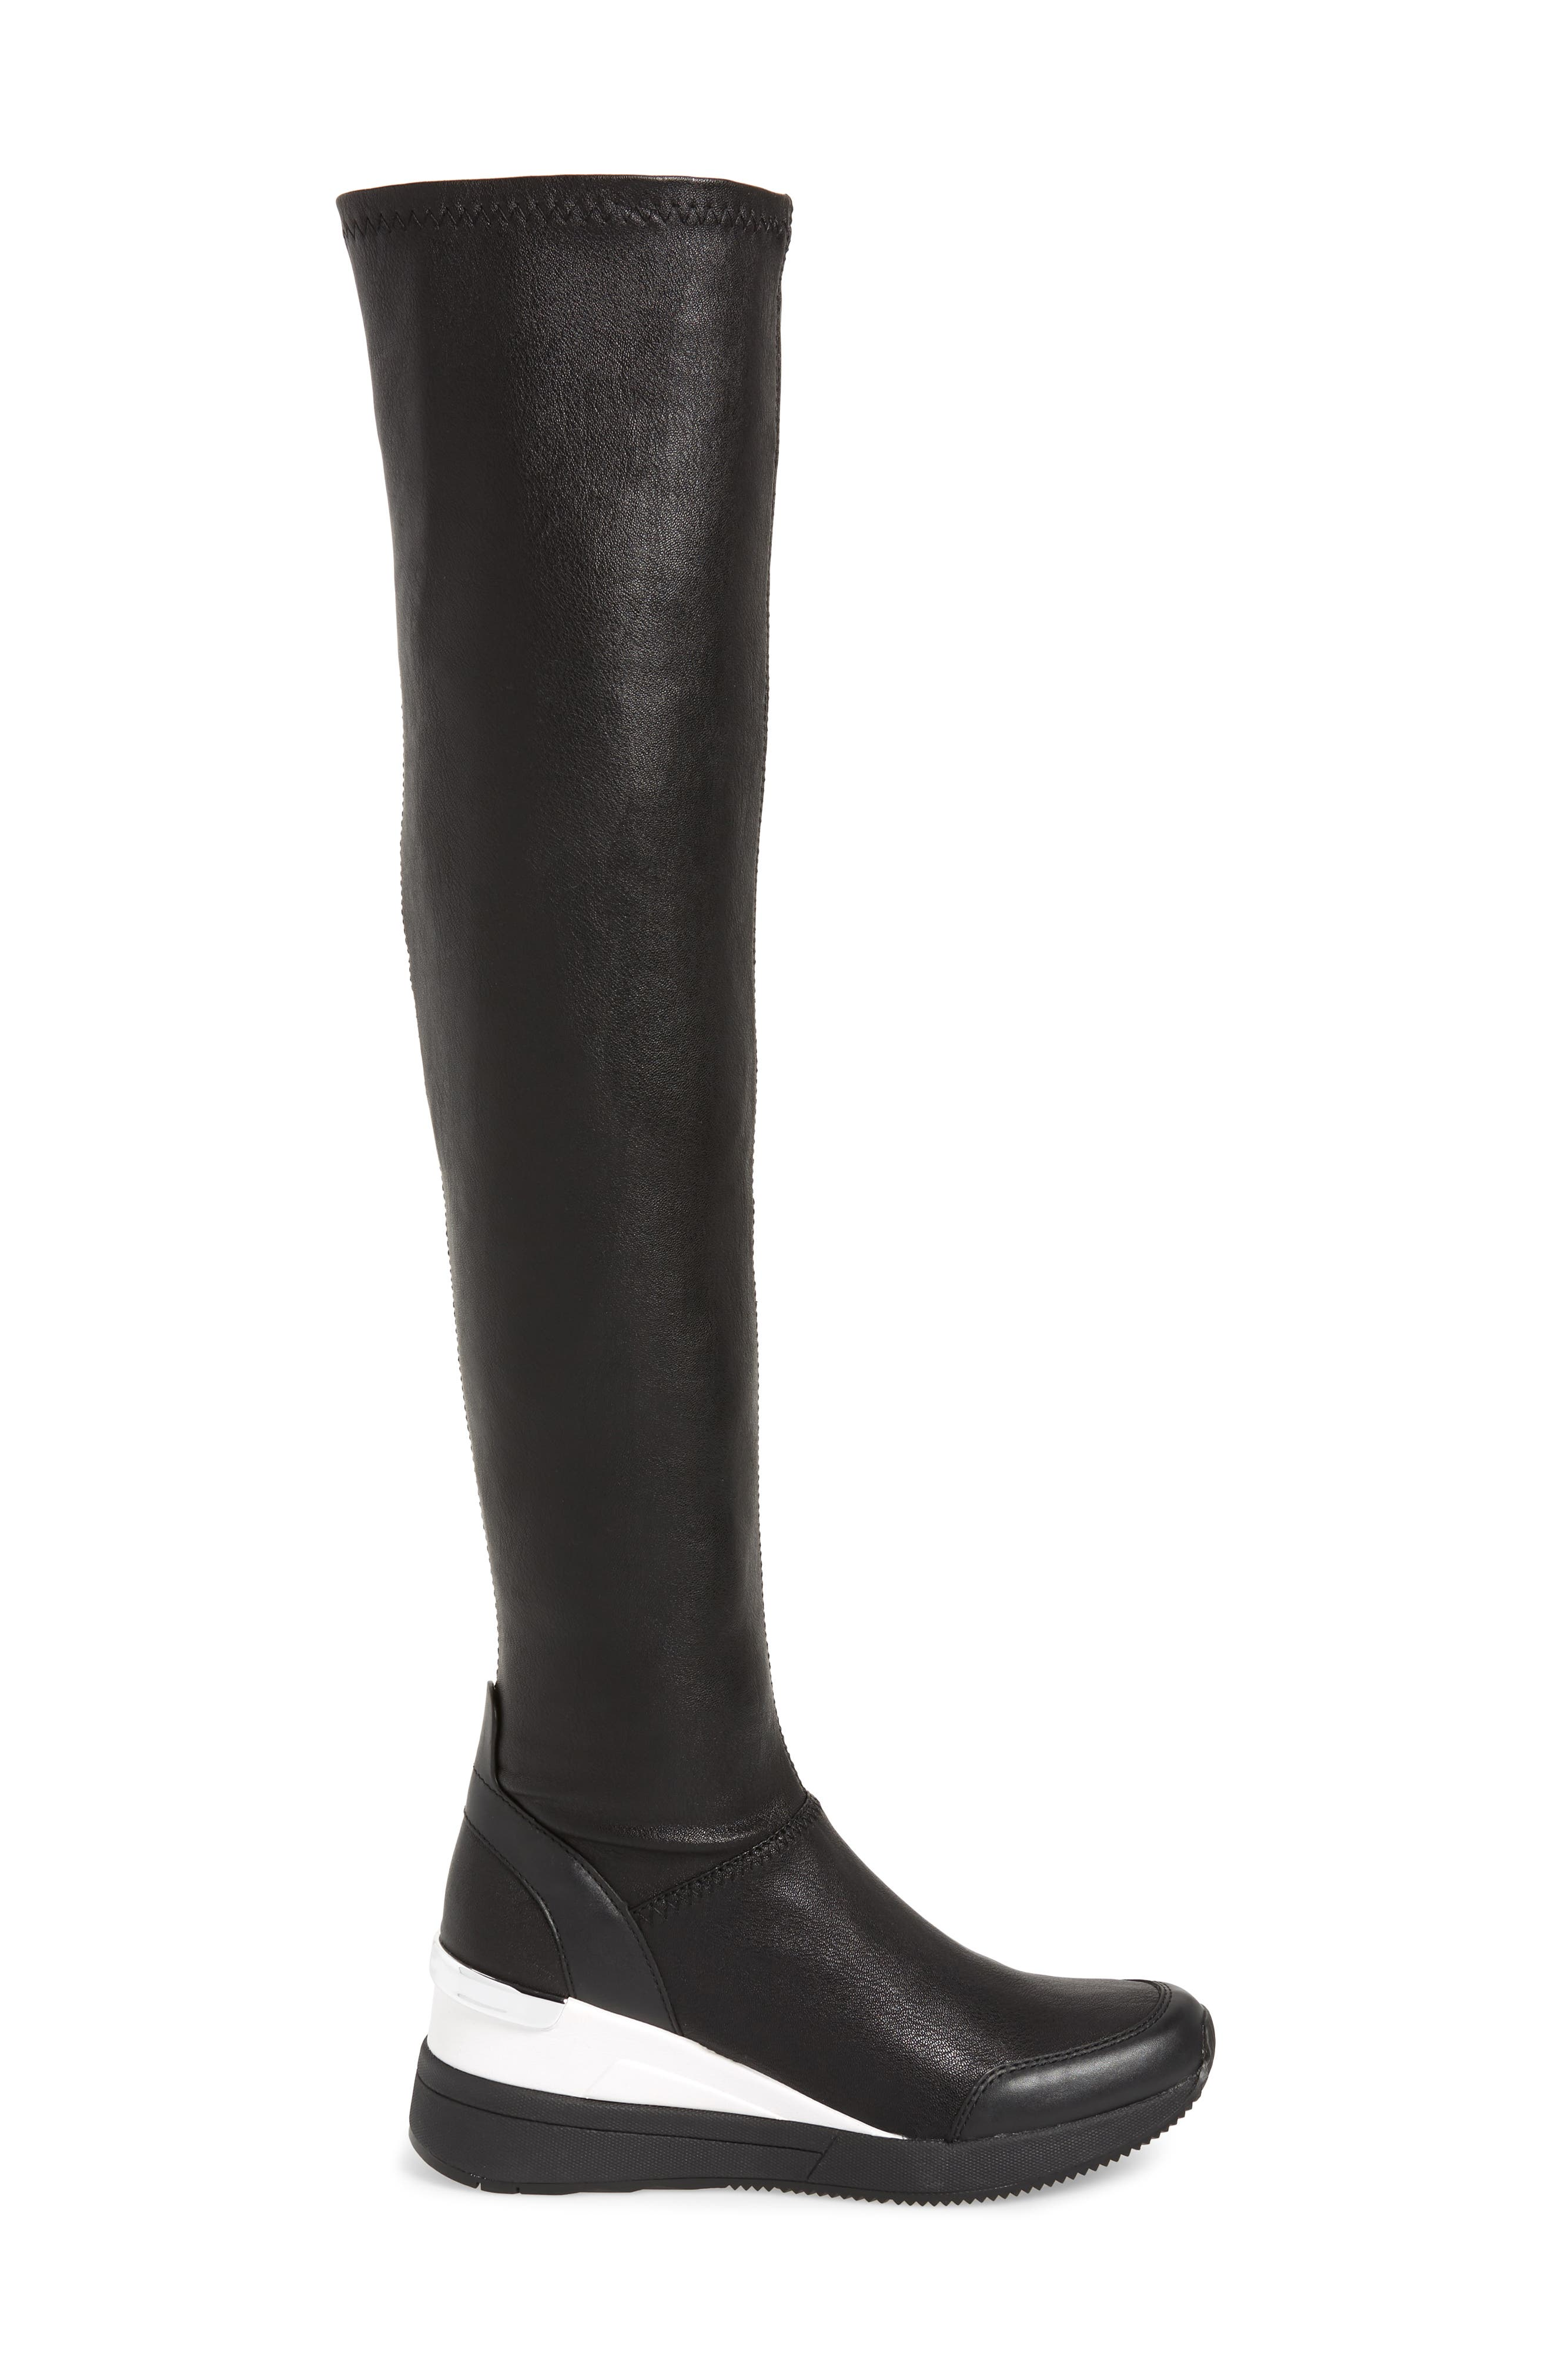 Tipton Wedge Over the Knee Rain Boot,                             Alternate thumbnail 3, color,                             BLACK FAUX LEATHER